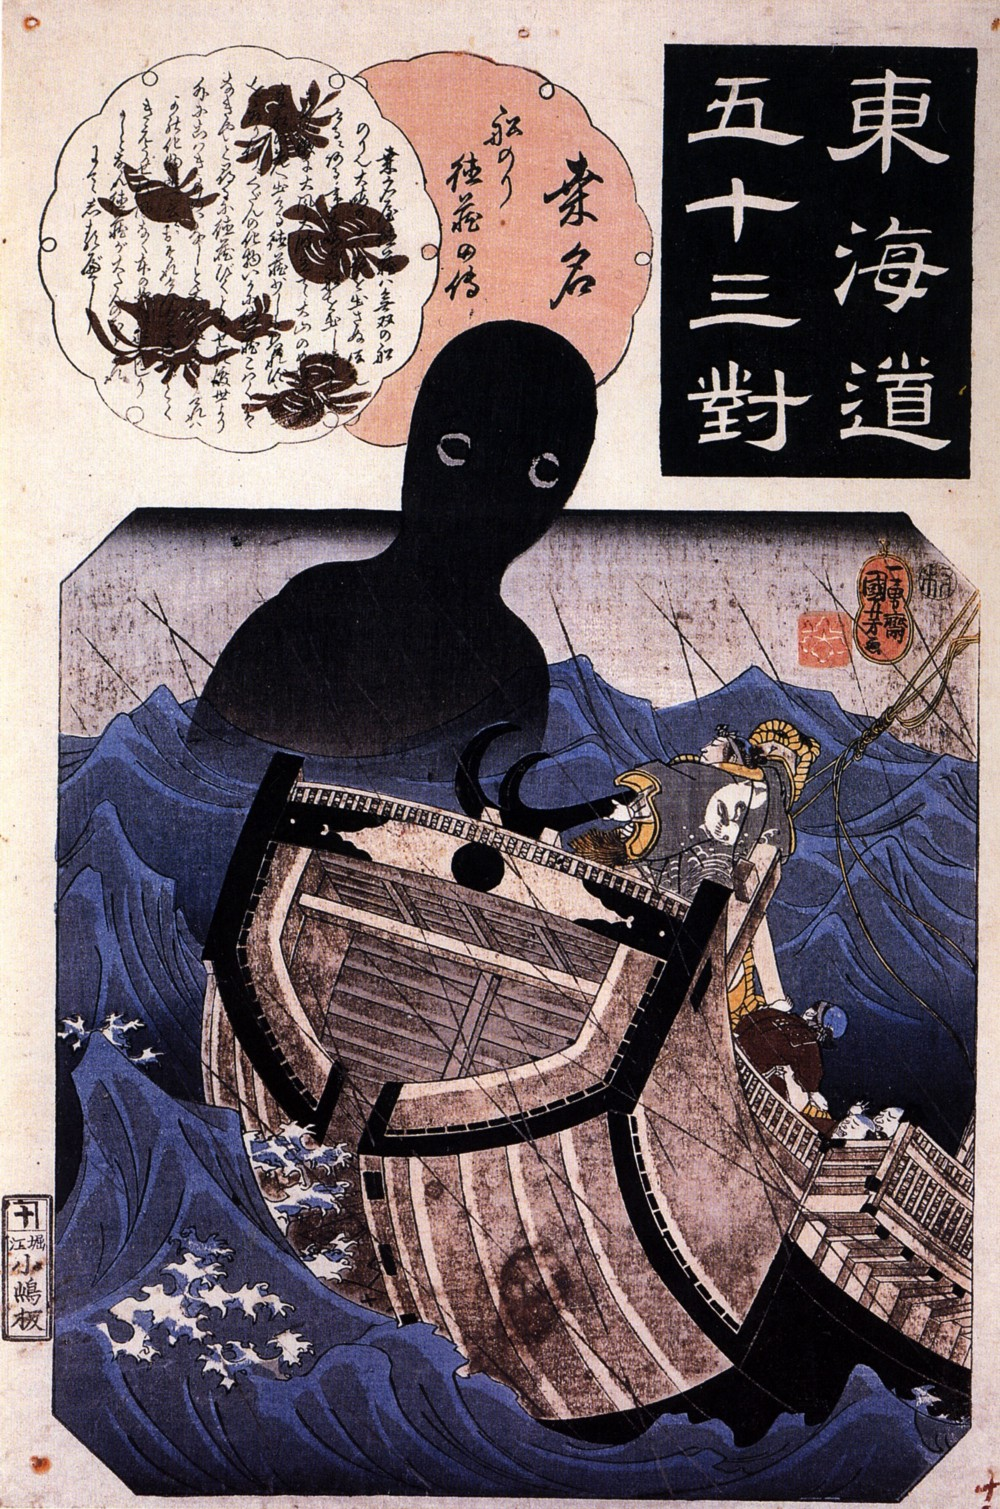 Very old painting depicting a large black humanoid shape rising from waters near a ship